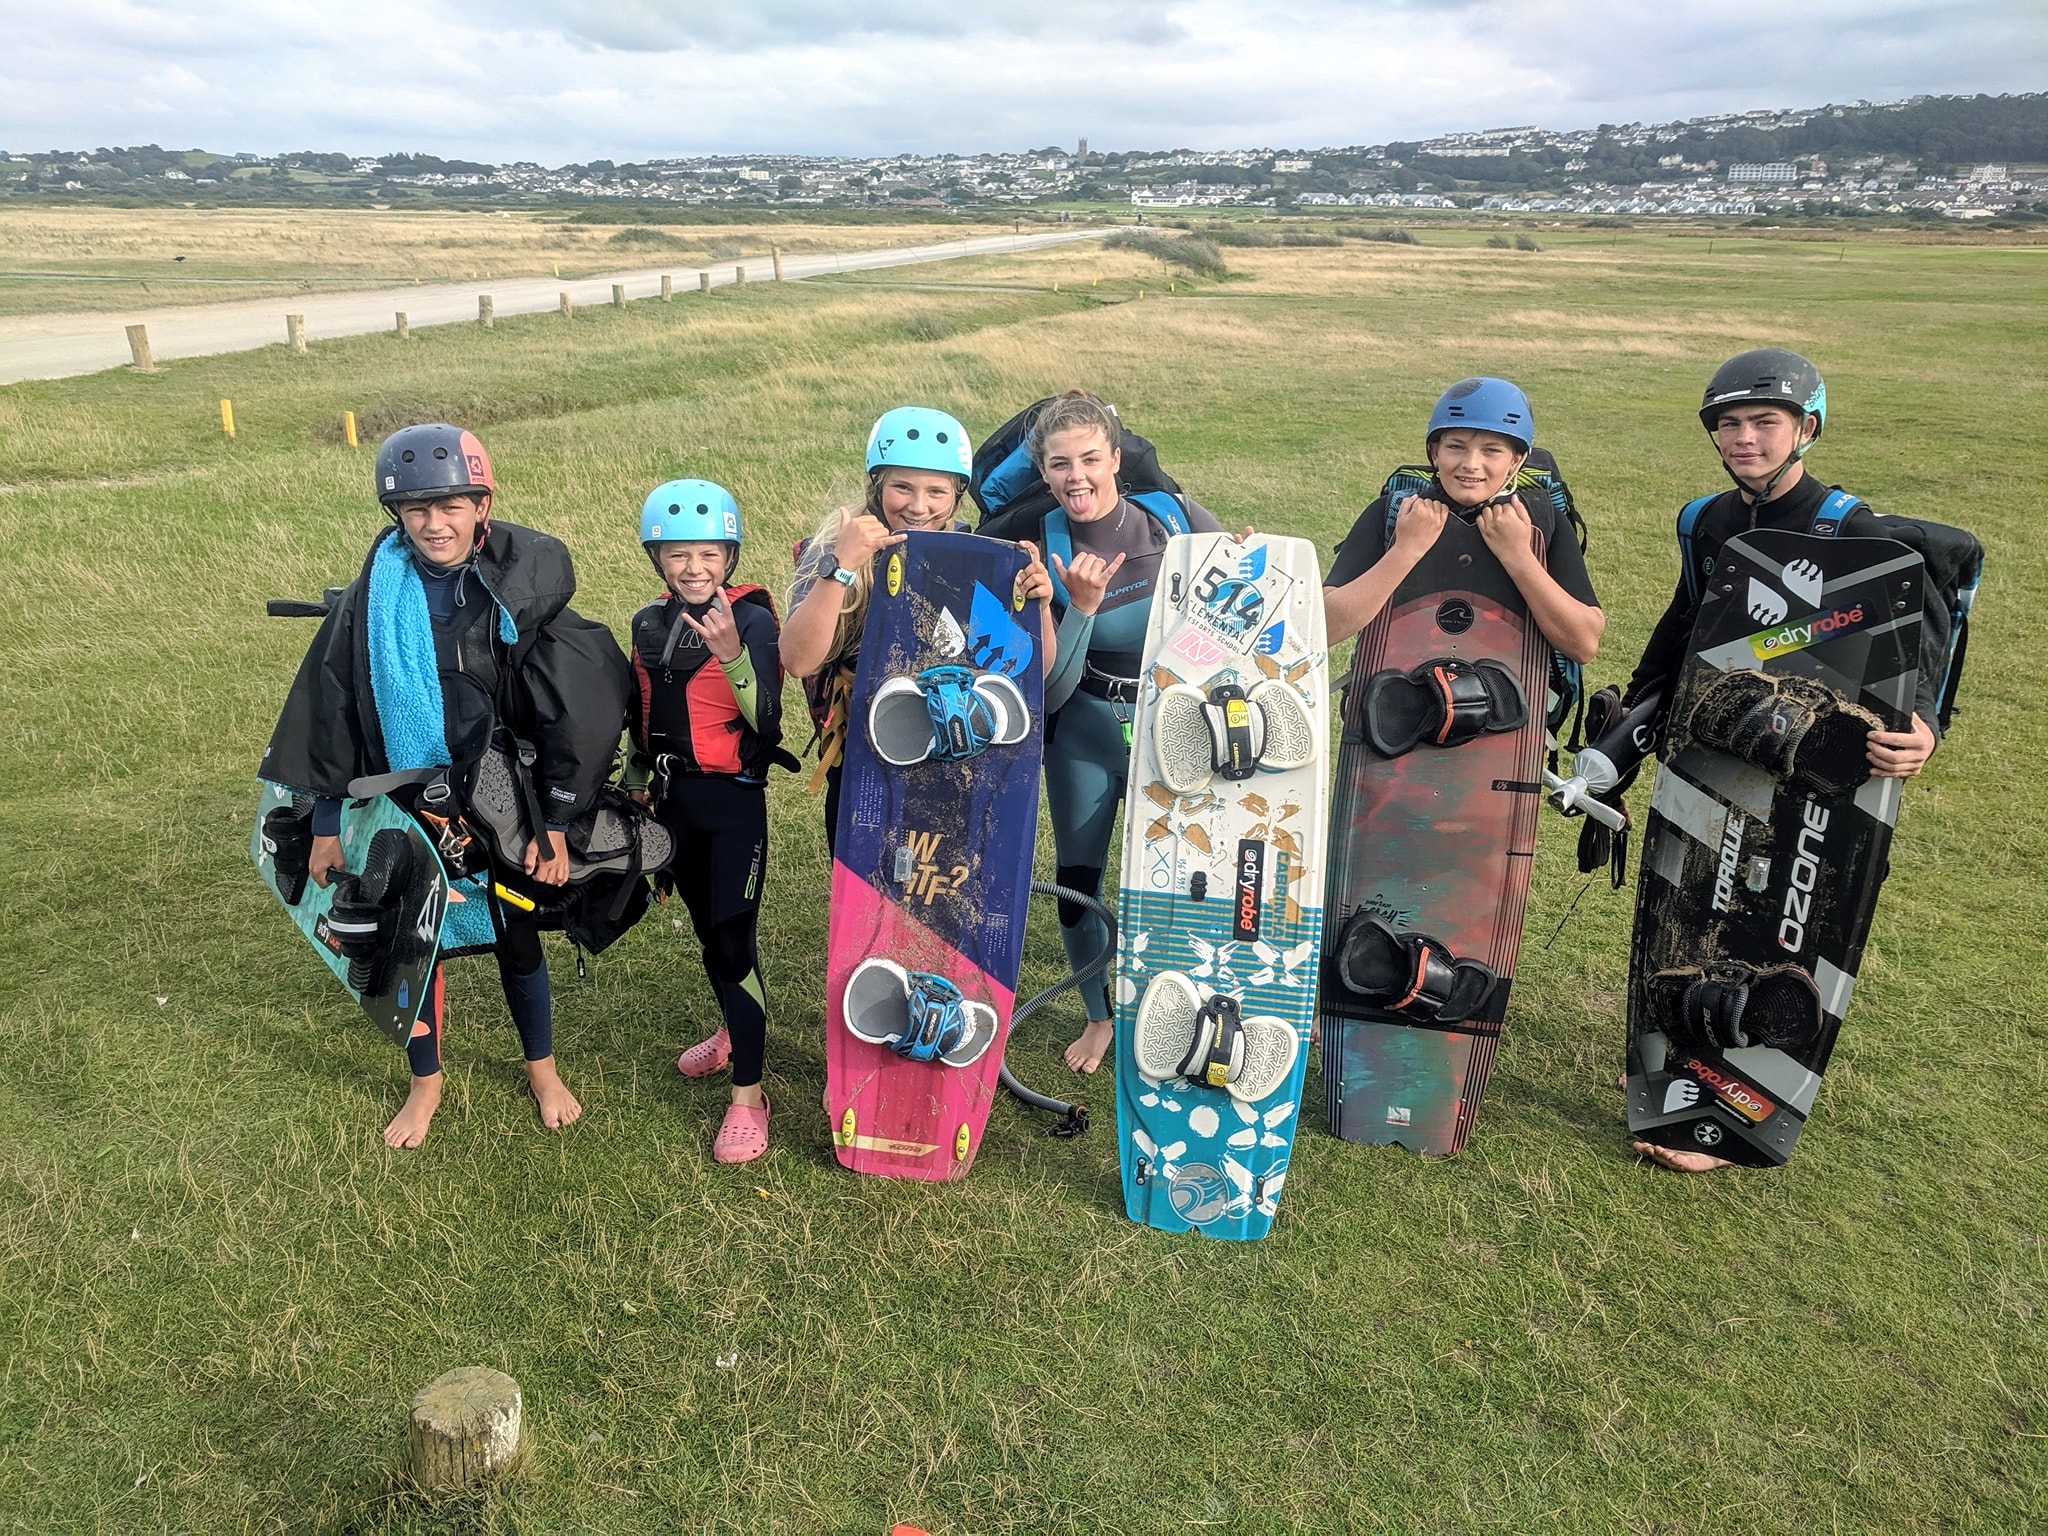 Kite Kids Kitesurf Coaching club